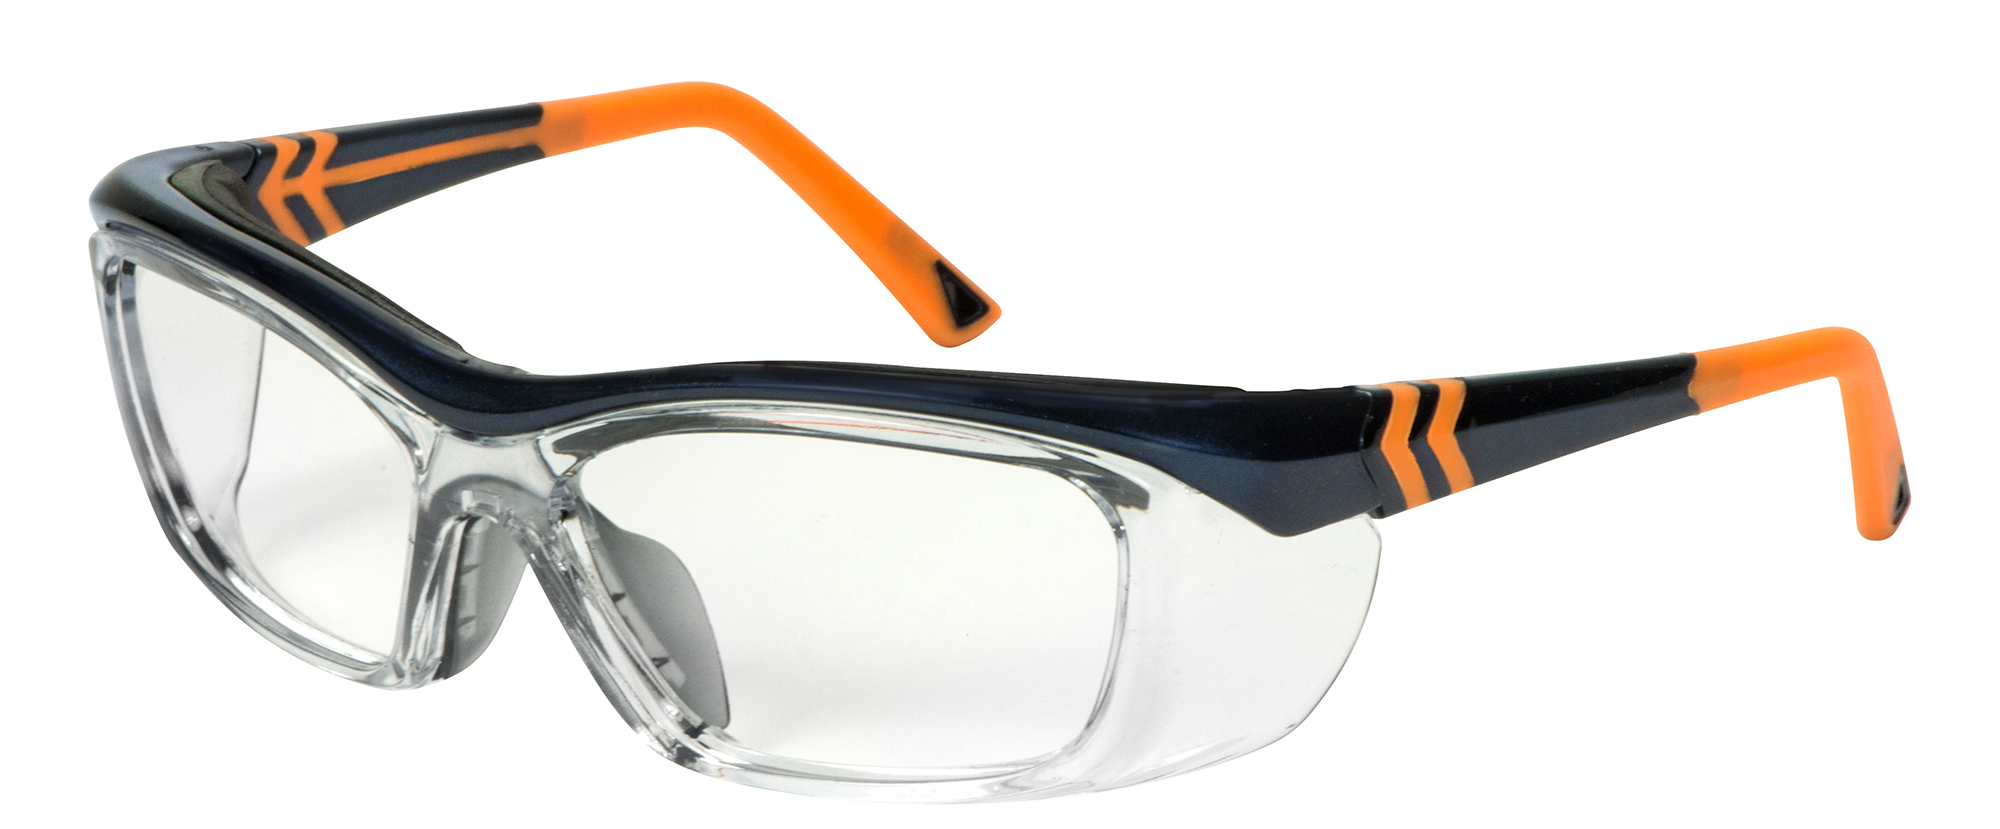 Side Shields For Safety Eye Wear – What Are The Requirements?